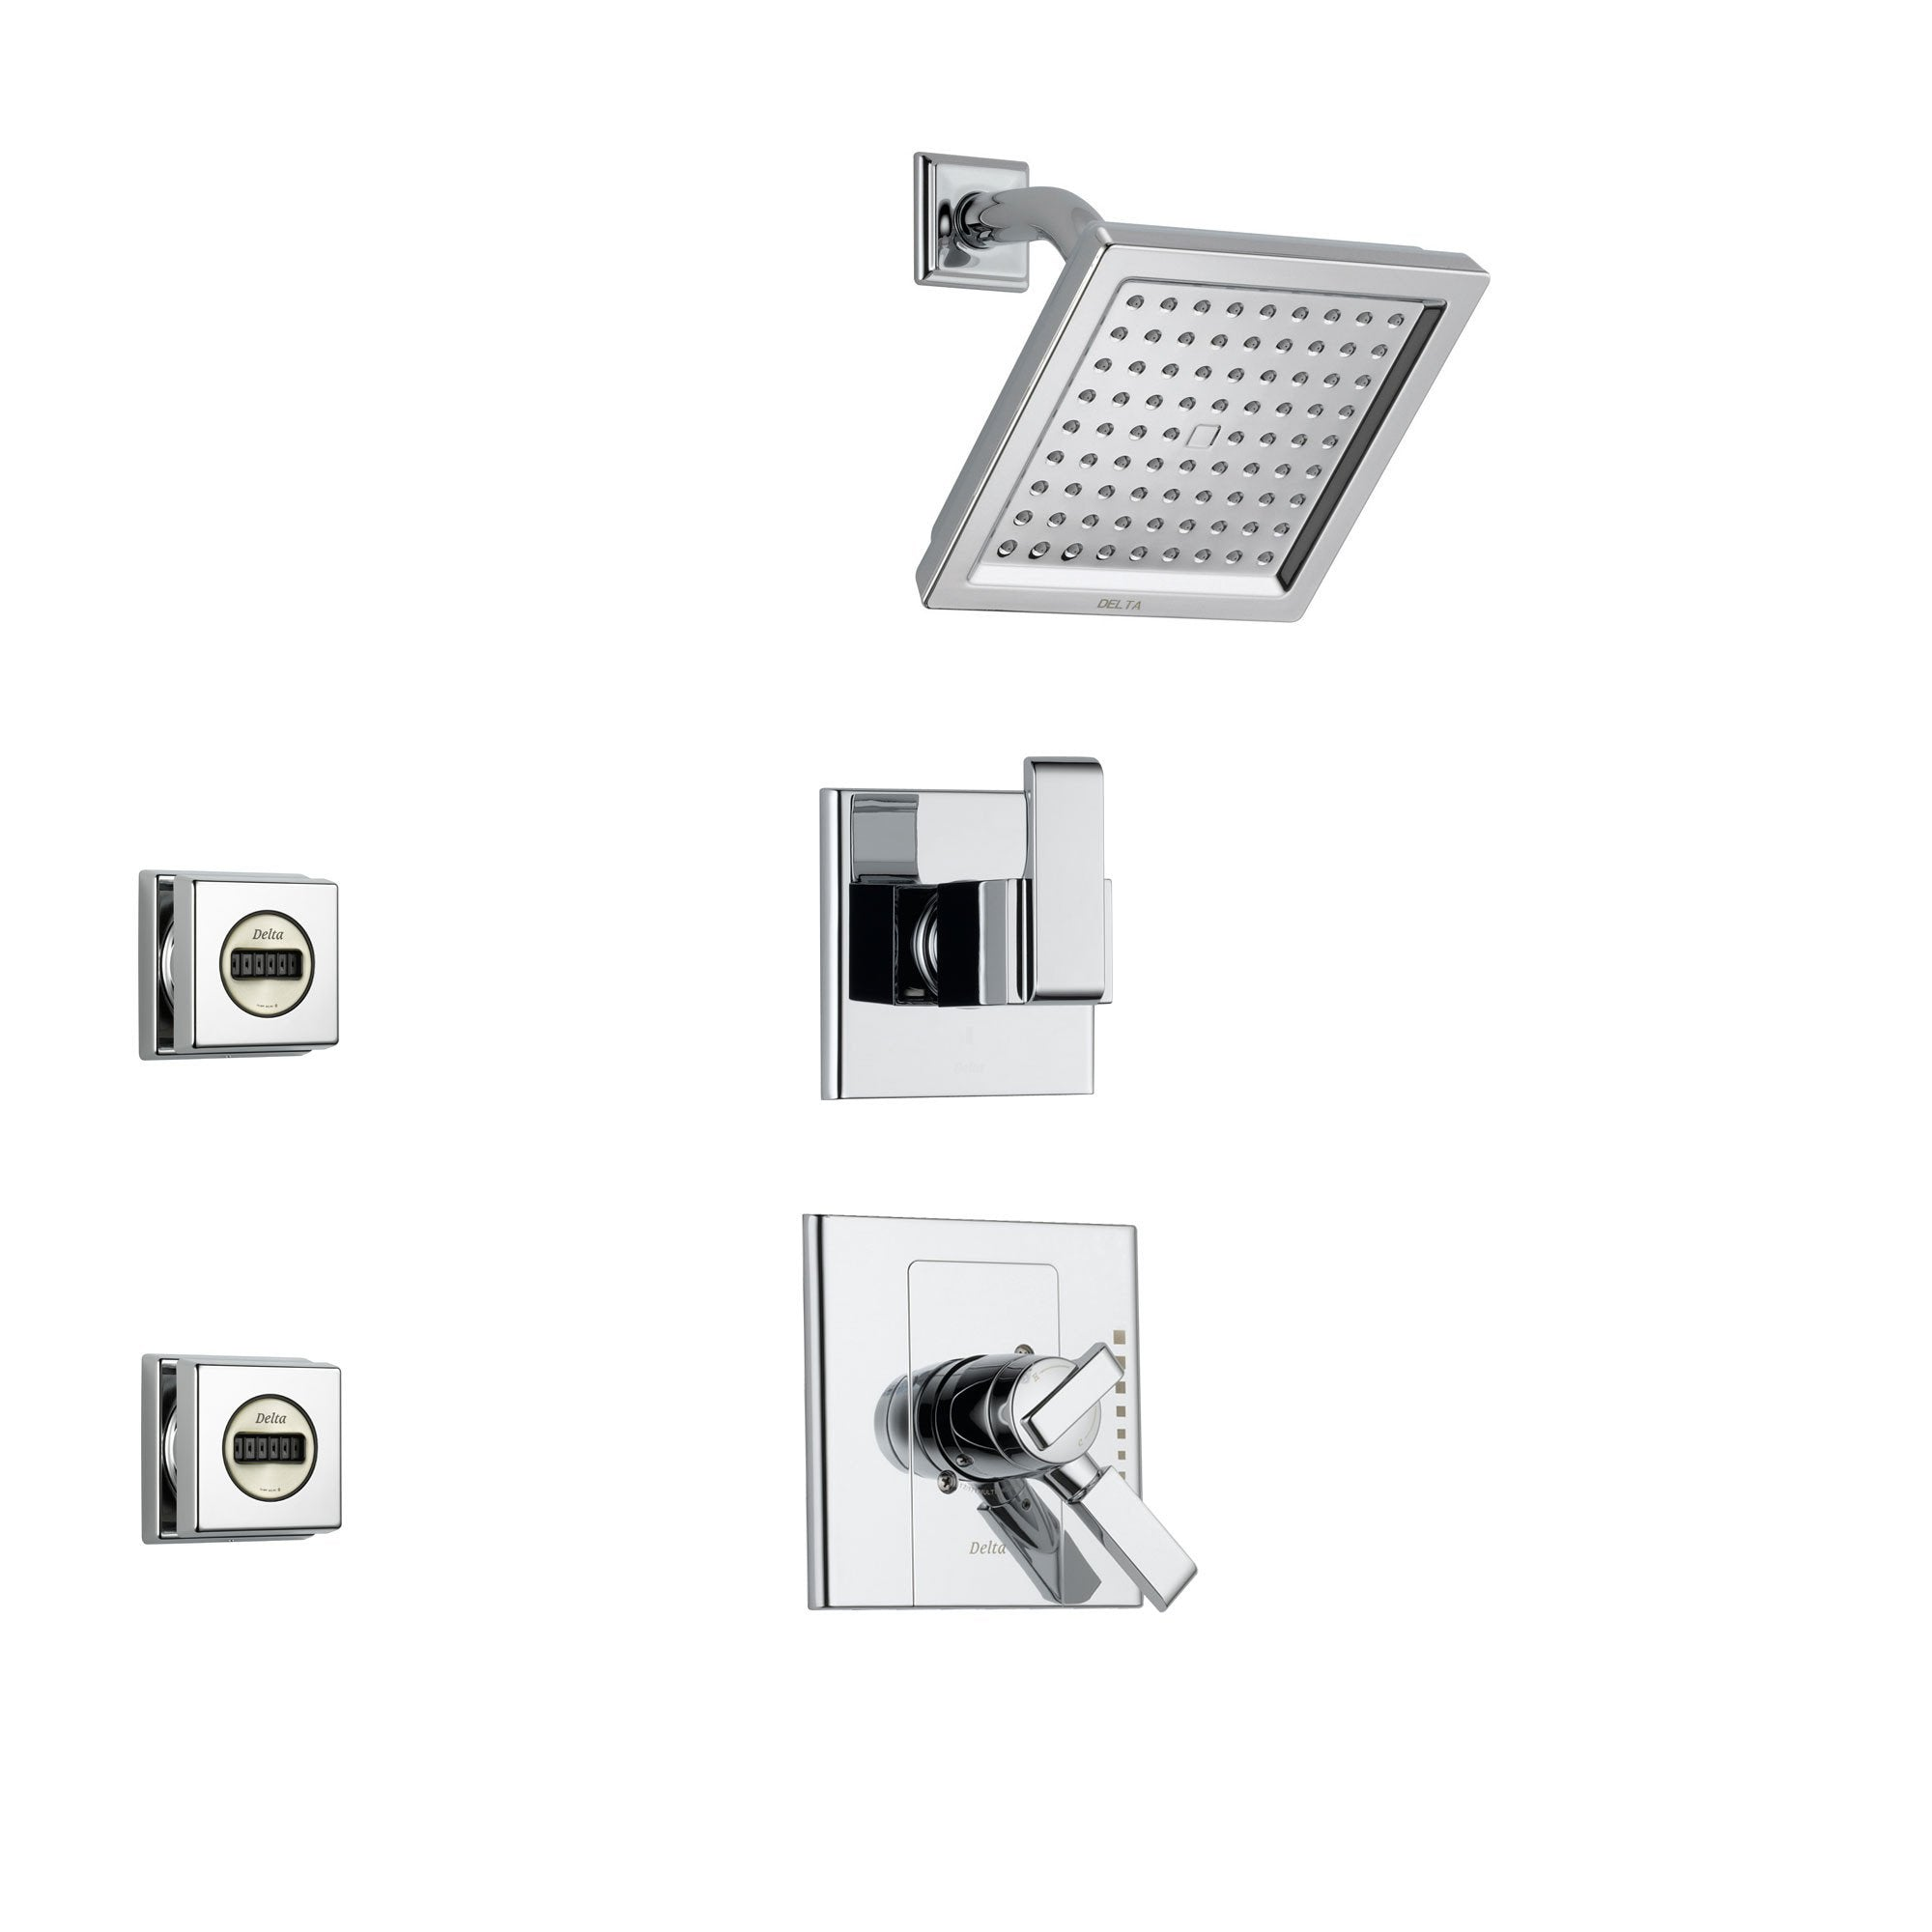 Delta Arzo Chrome Shower System with Dual Control Shower Handle, 3-setting Diverter, Modern Square Showerhead, and 2 Body Sprays SS178685